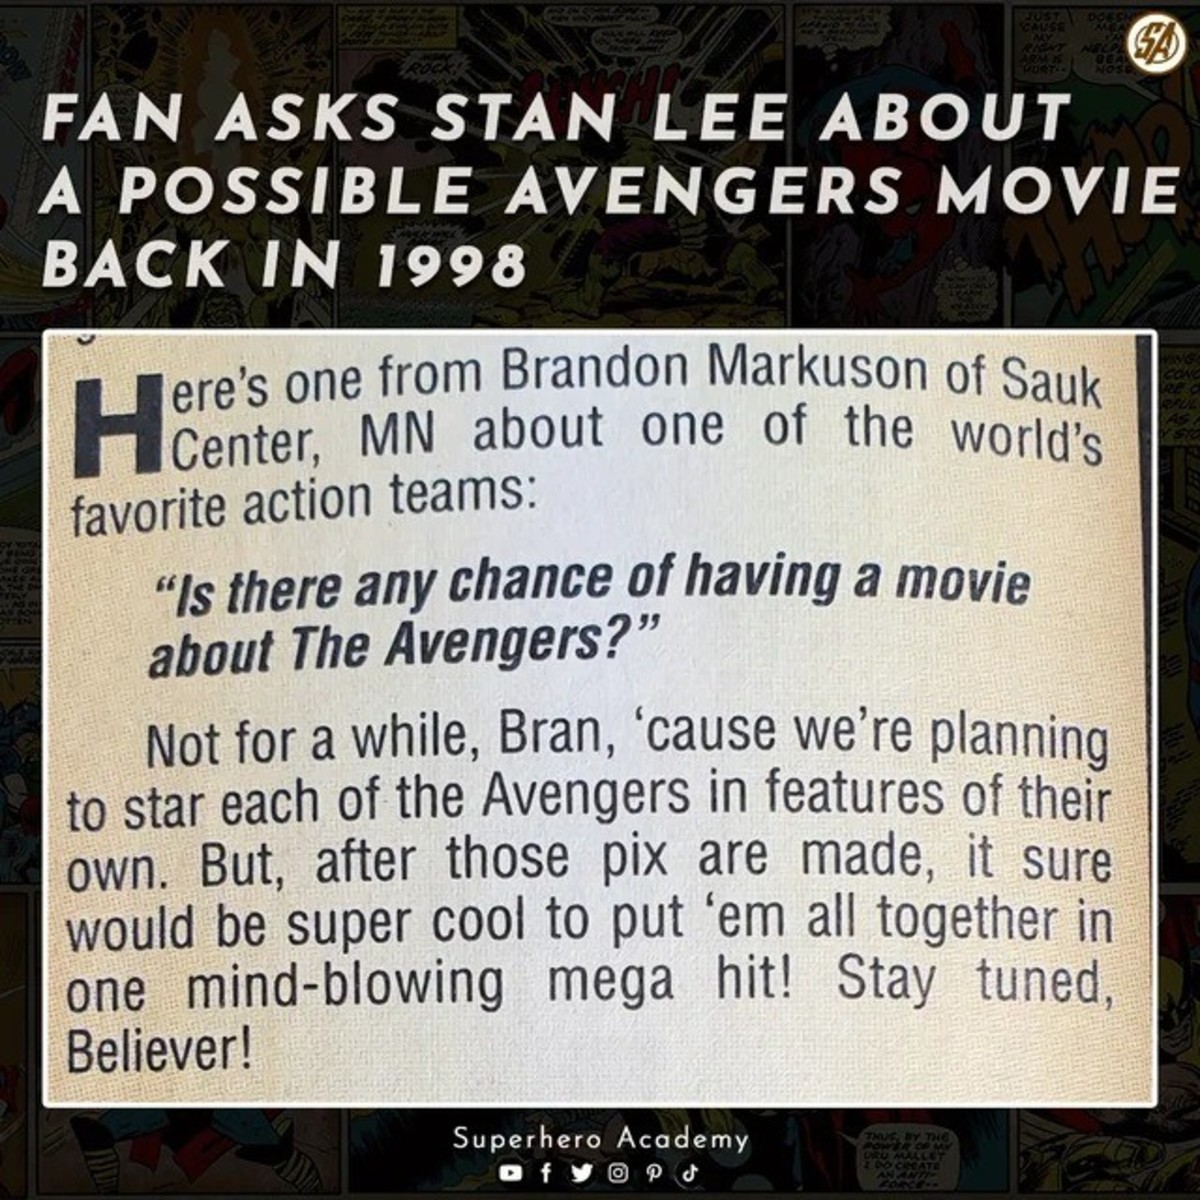 Marvel had their planned out. .. How many never got their own or were in their own after they were in an avengers movie, besides the Hulk